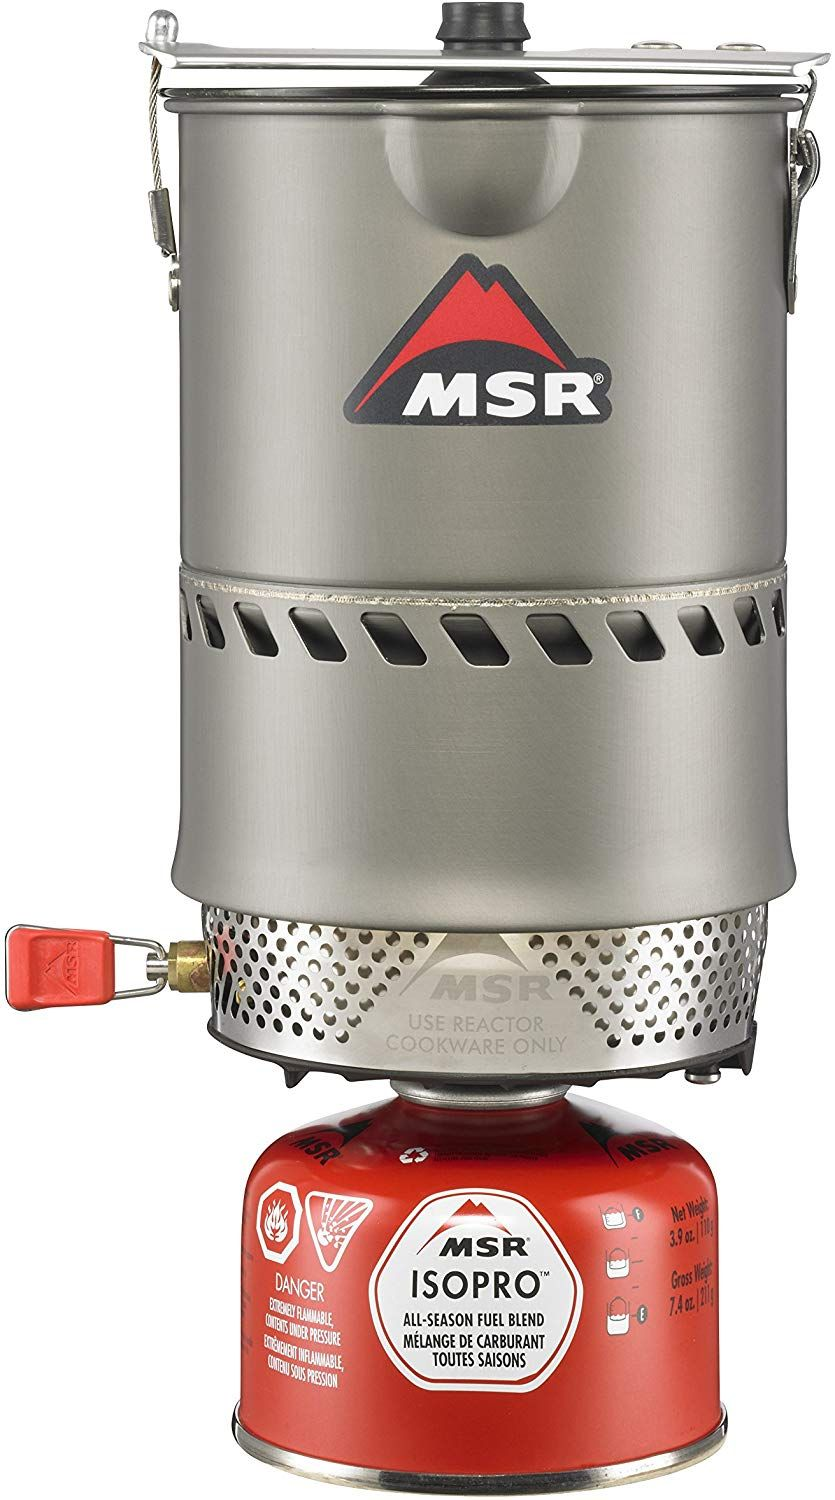 MSR Reactor Stove System Best camping stove, Solar